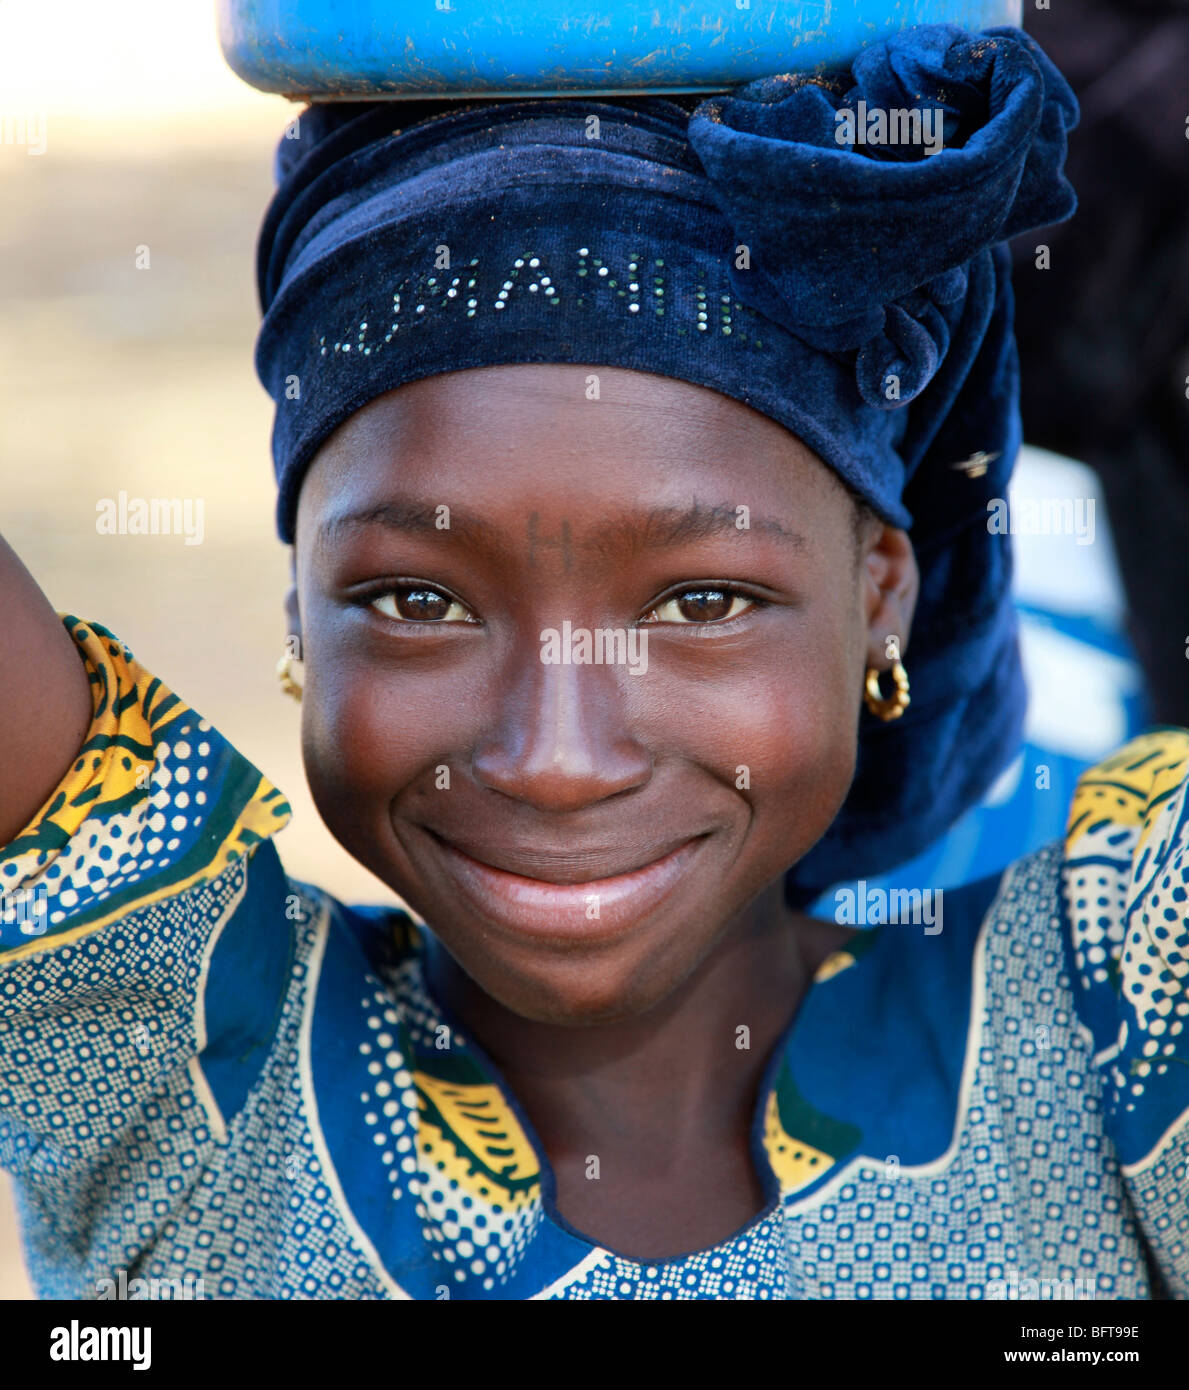 Young girl in Africa - Stock Image